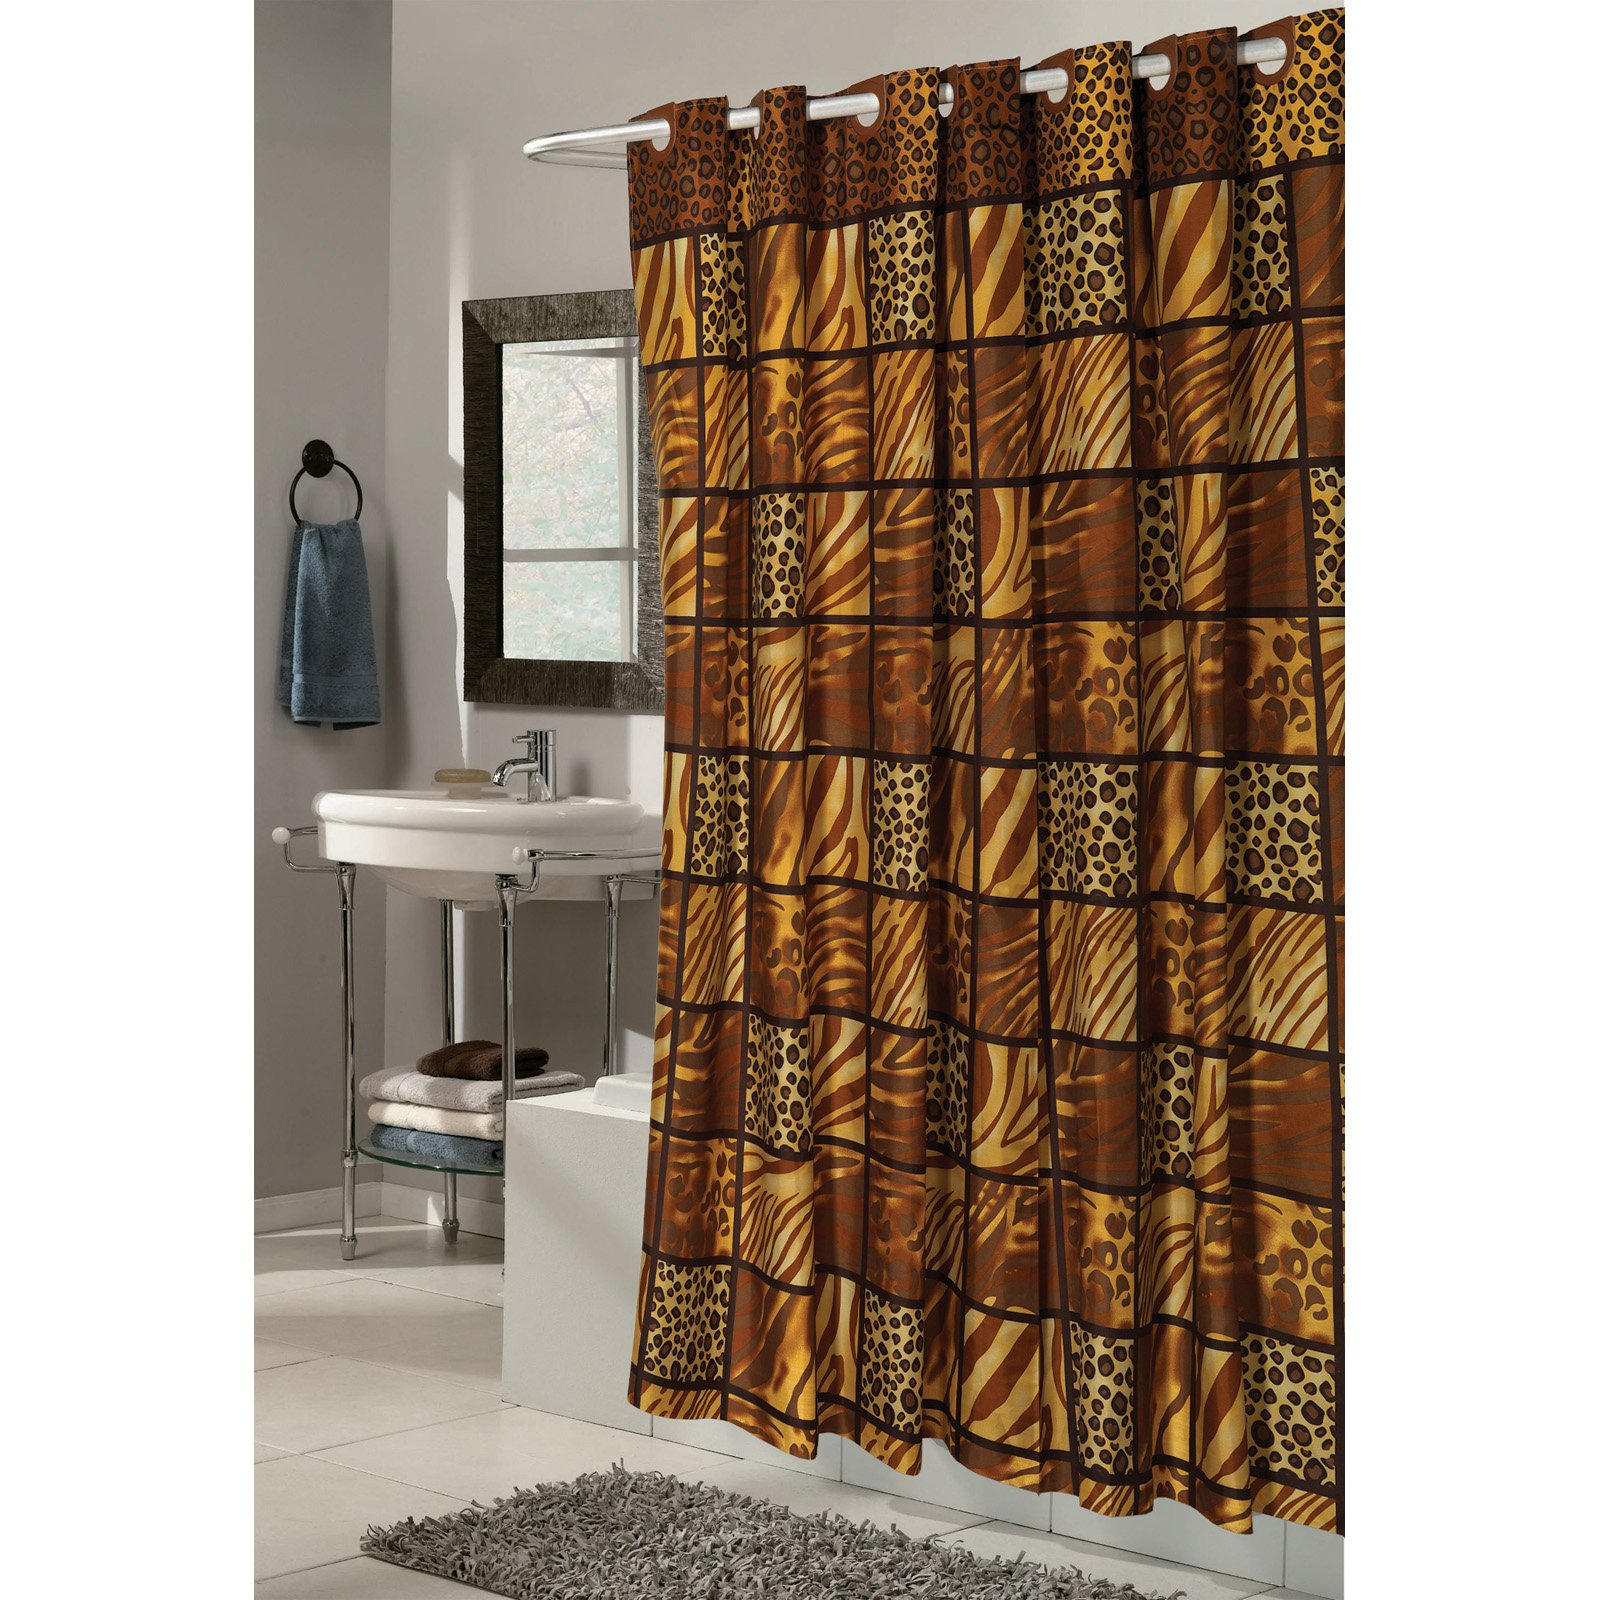 Hookless Shower Curtain With Mesh Pockets Vision Window Curtains Drapes